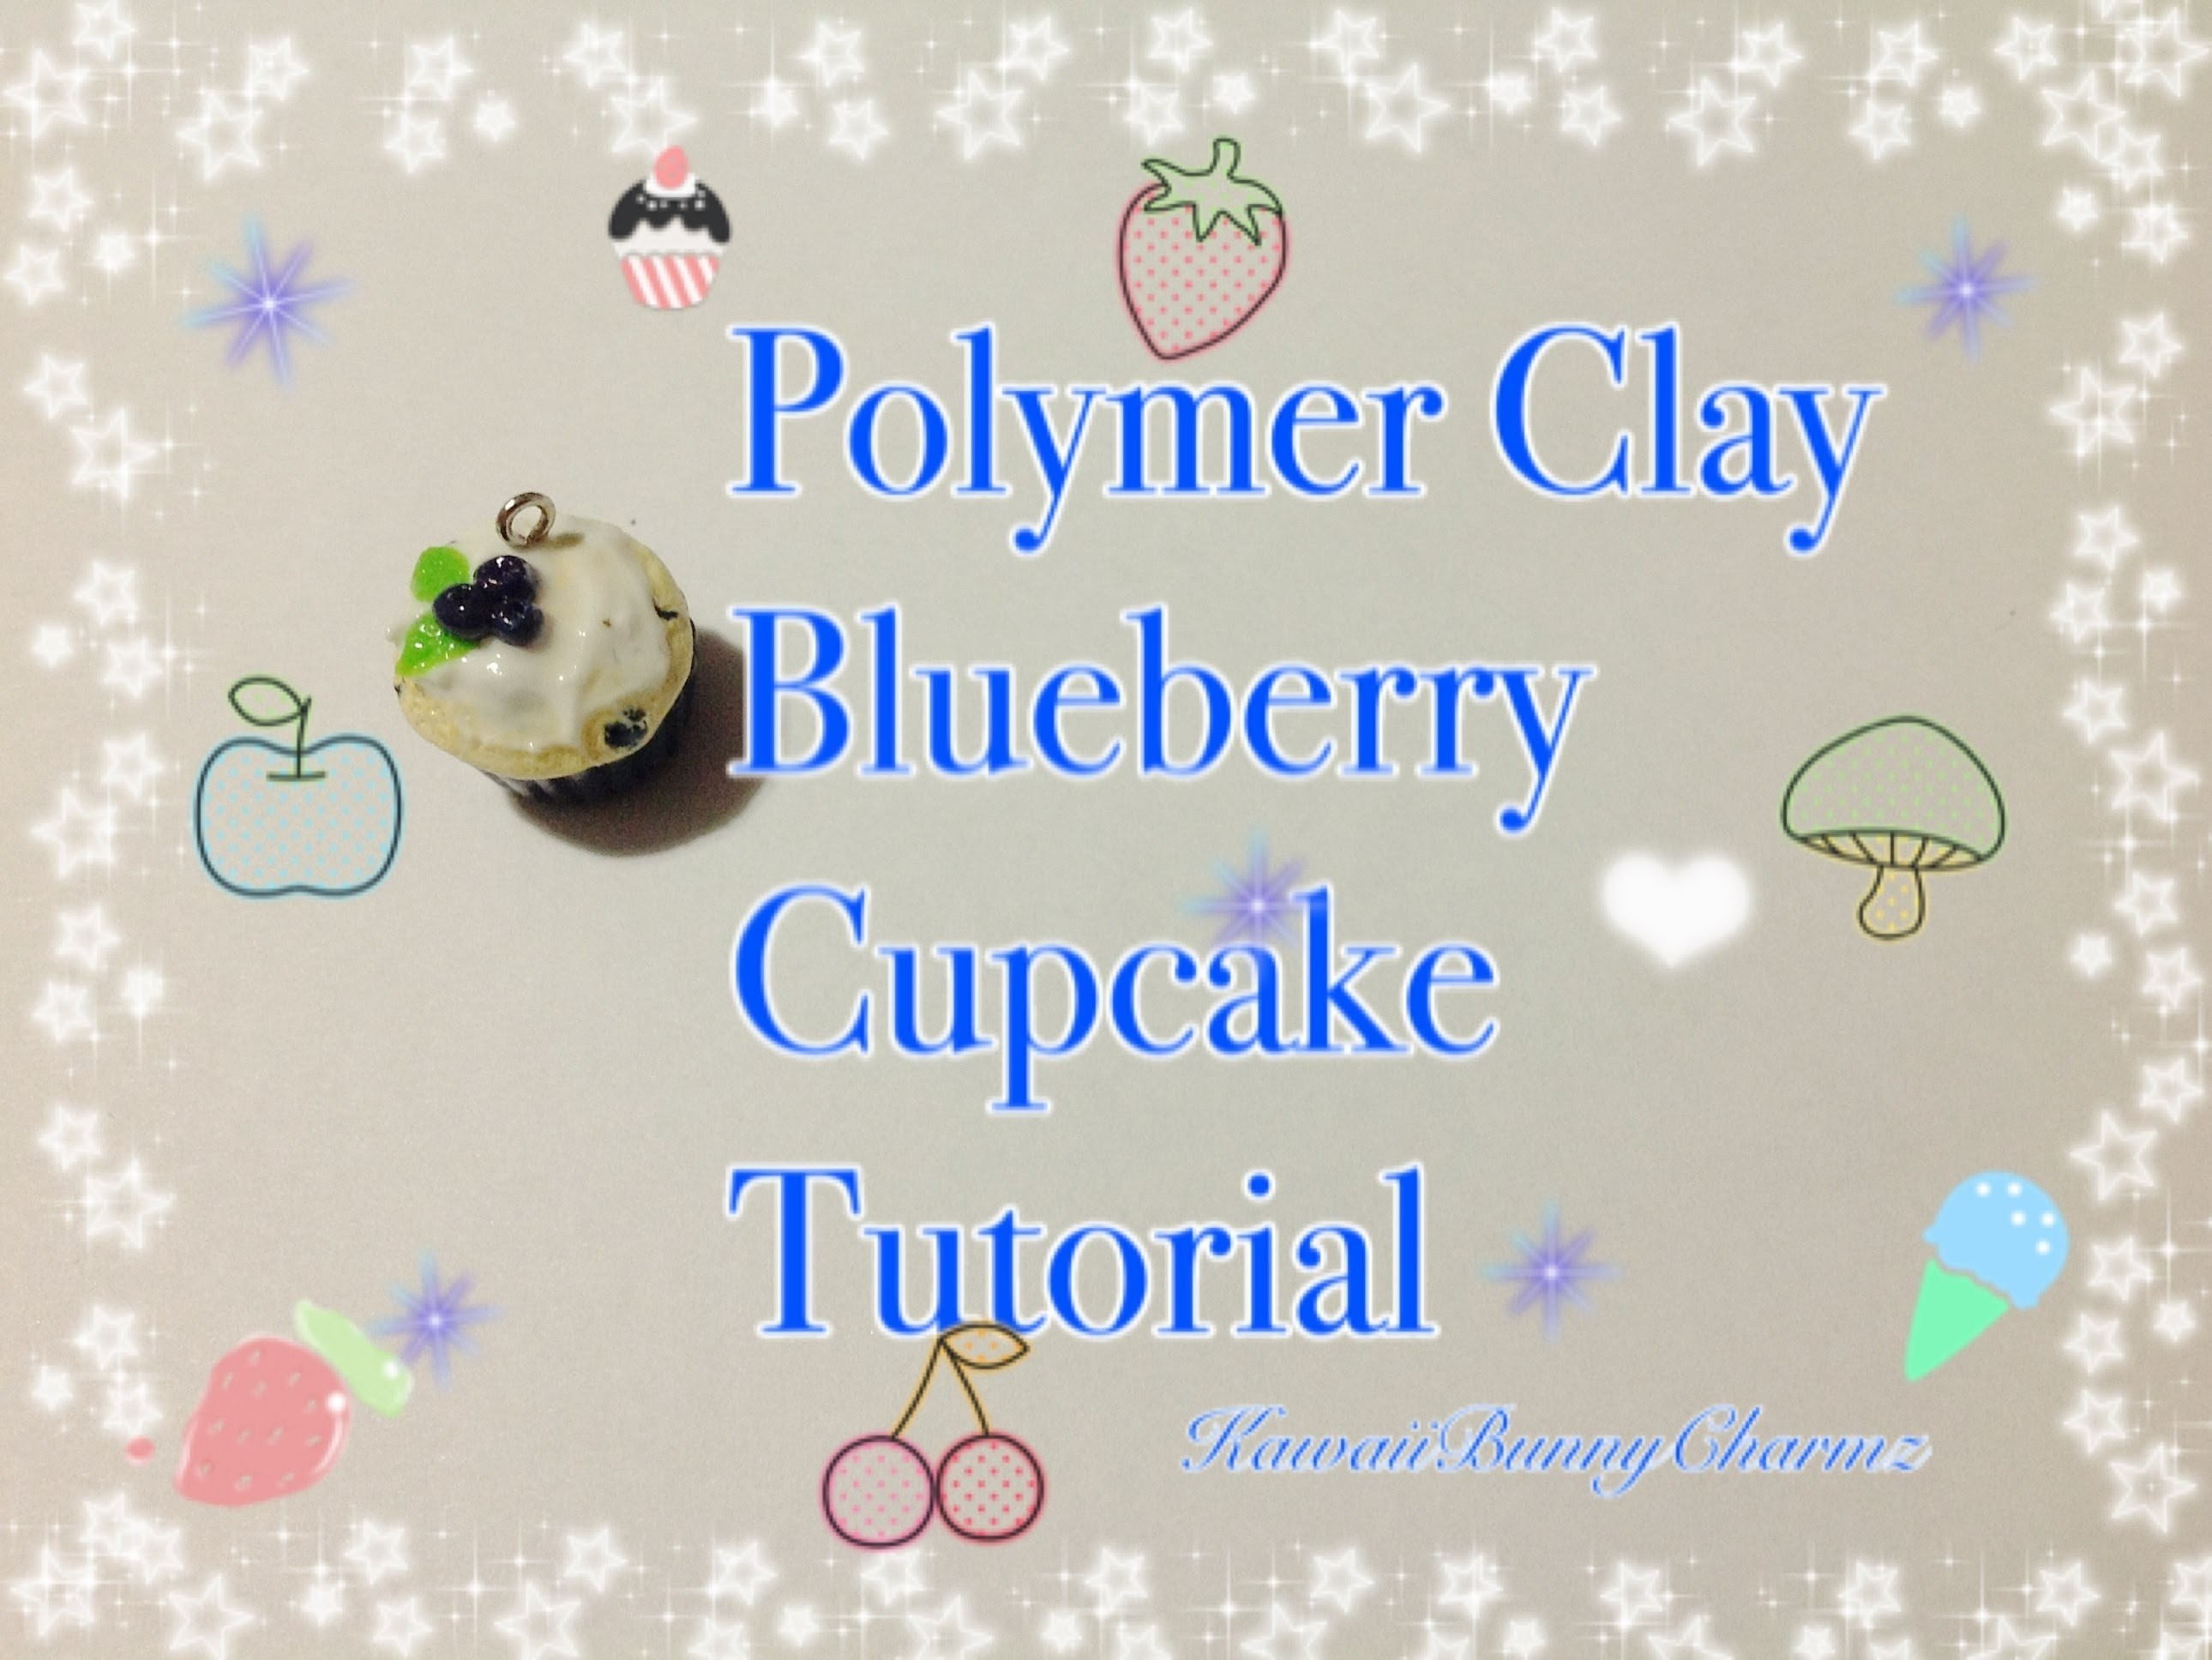 Polymer Clay Blueberry Cupcake Tutorial